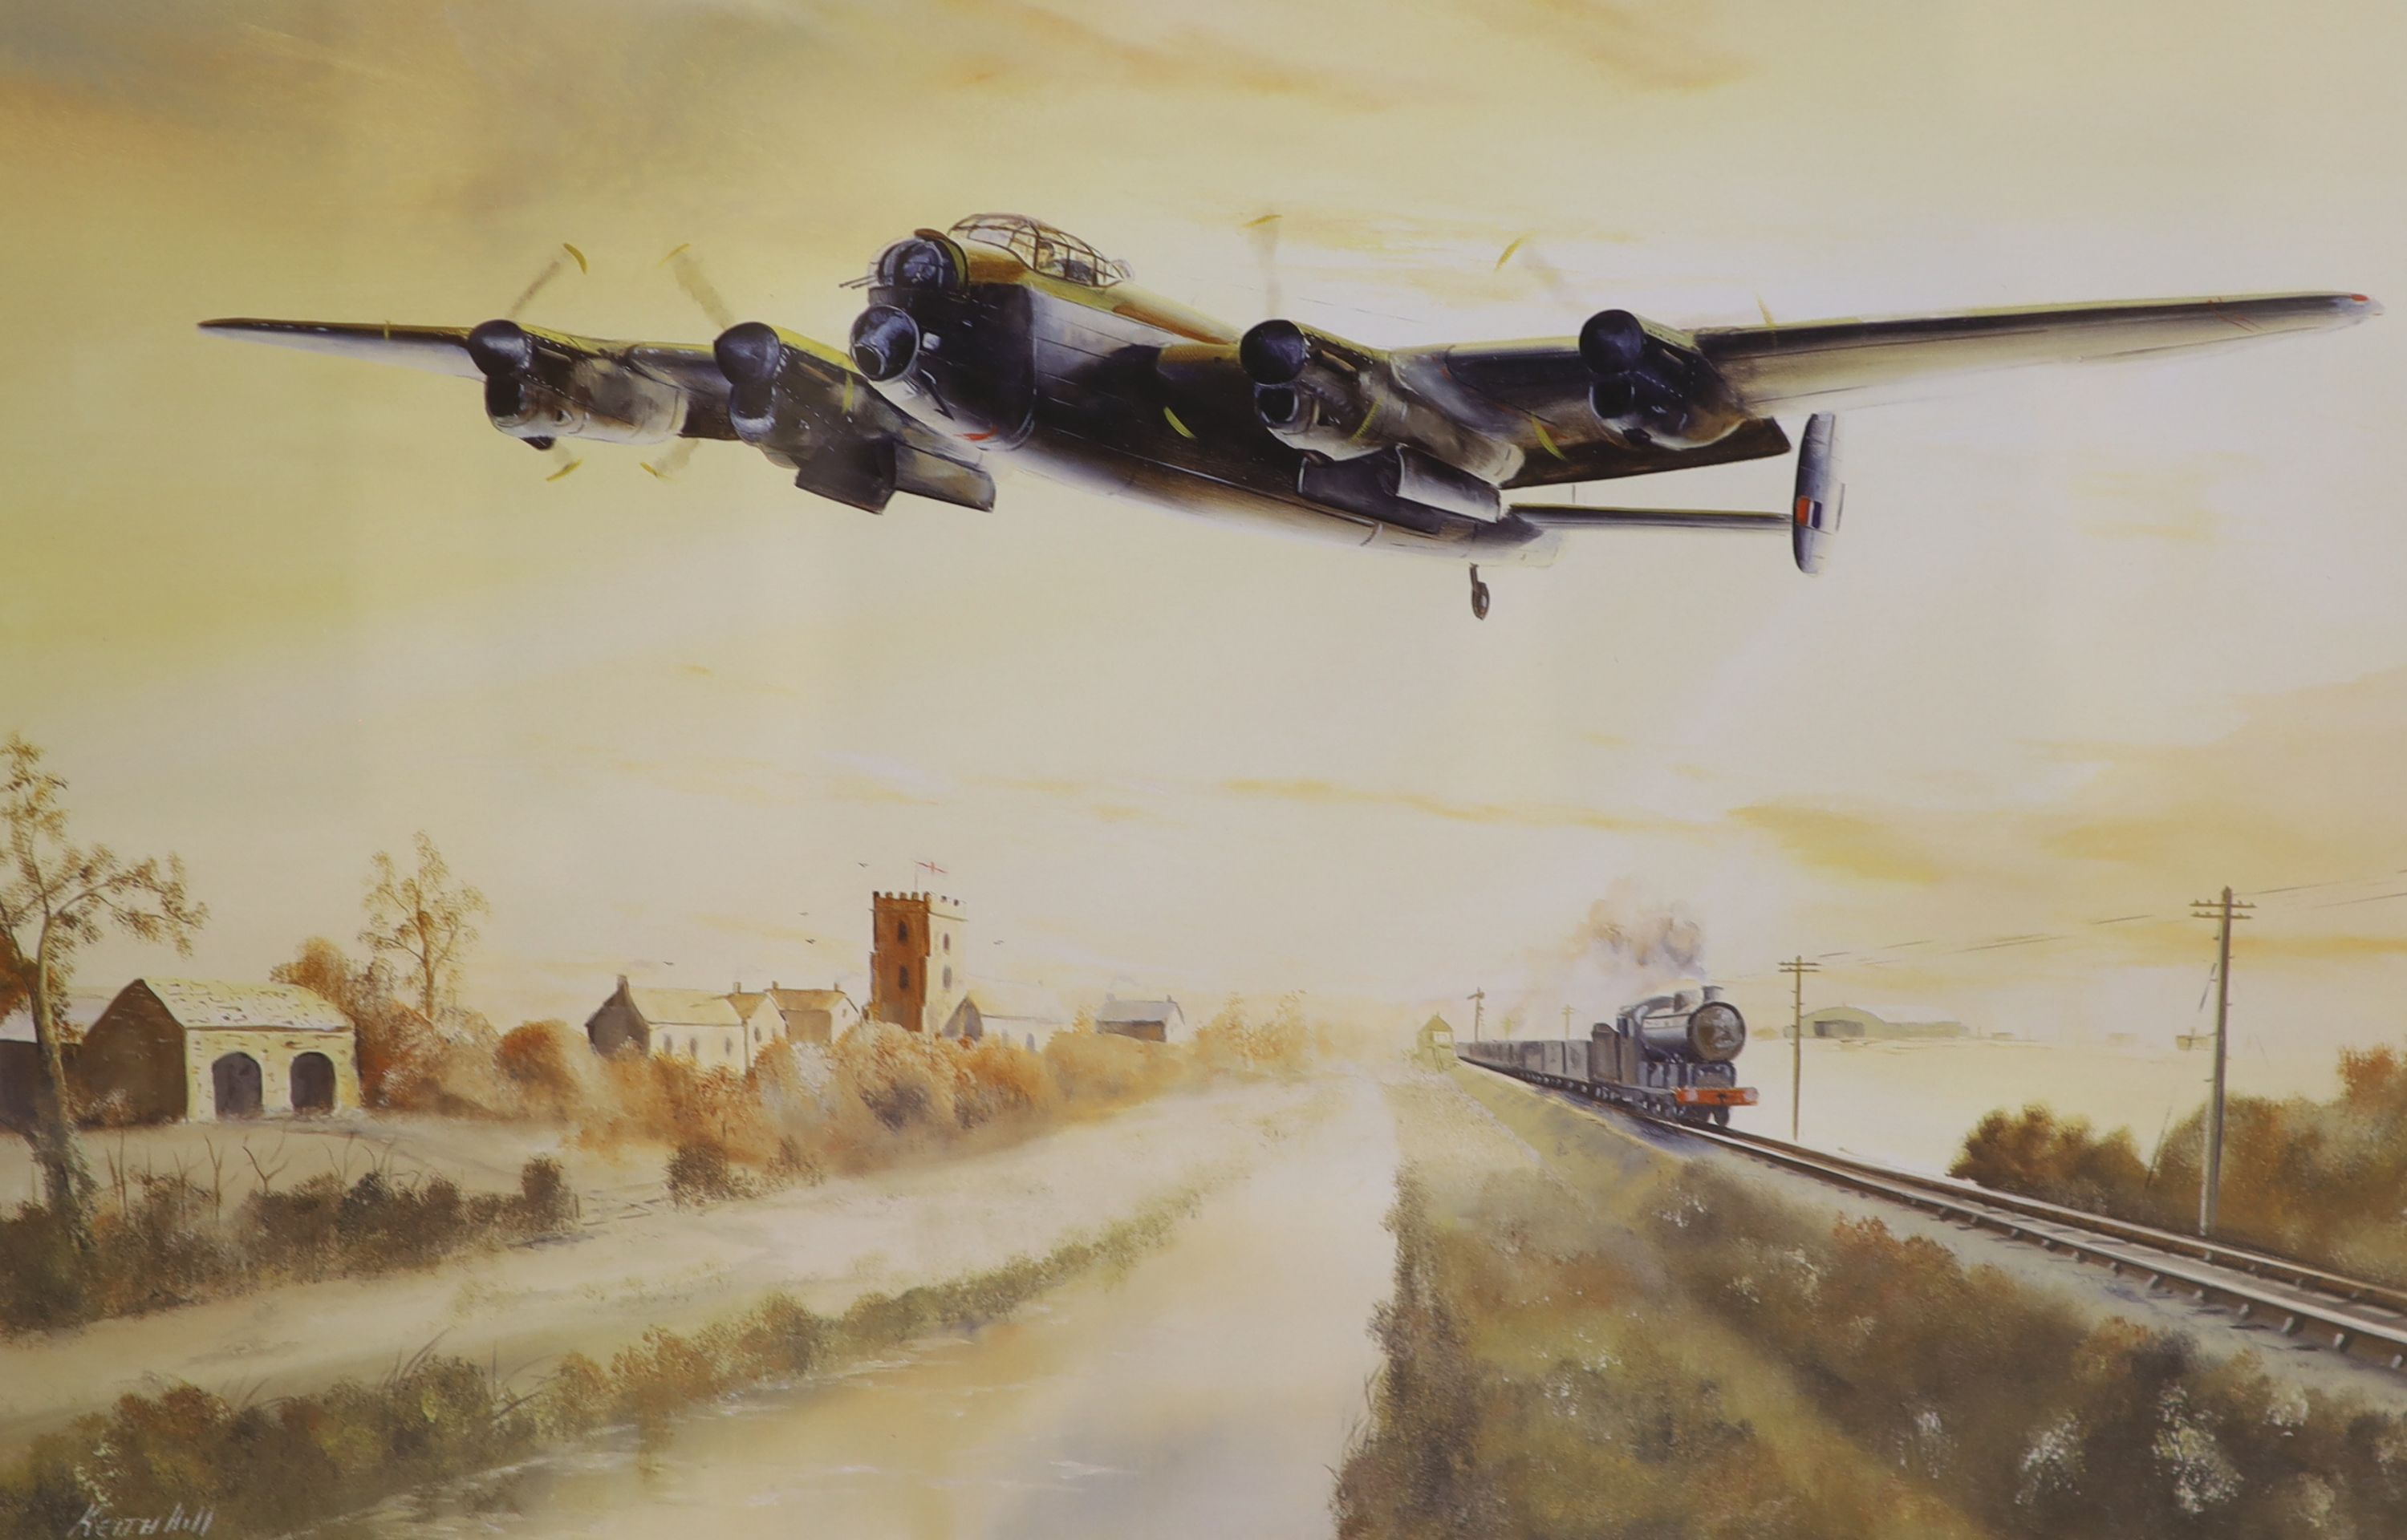 After Frank Wootton, limited edition coloured print, 'Battle Over London 1940', signed in pencil - Image 2 of 4